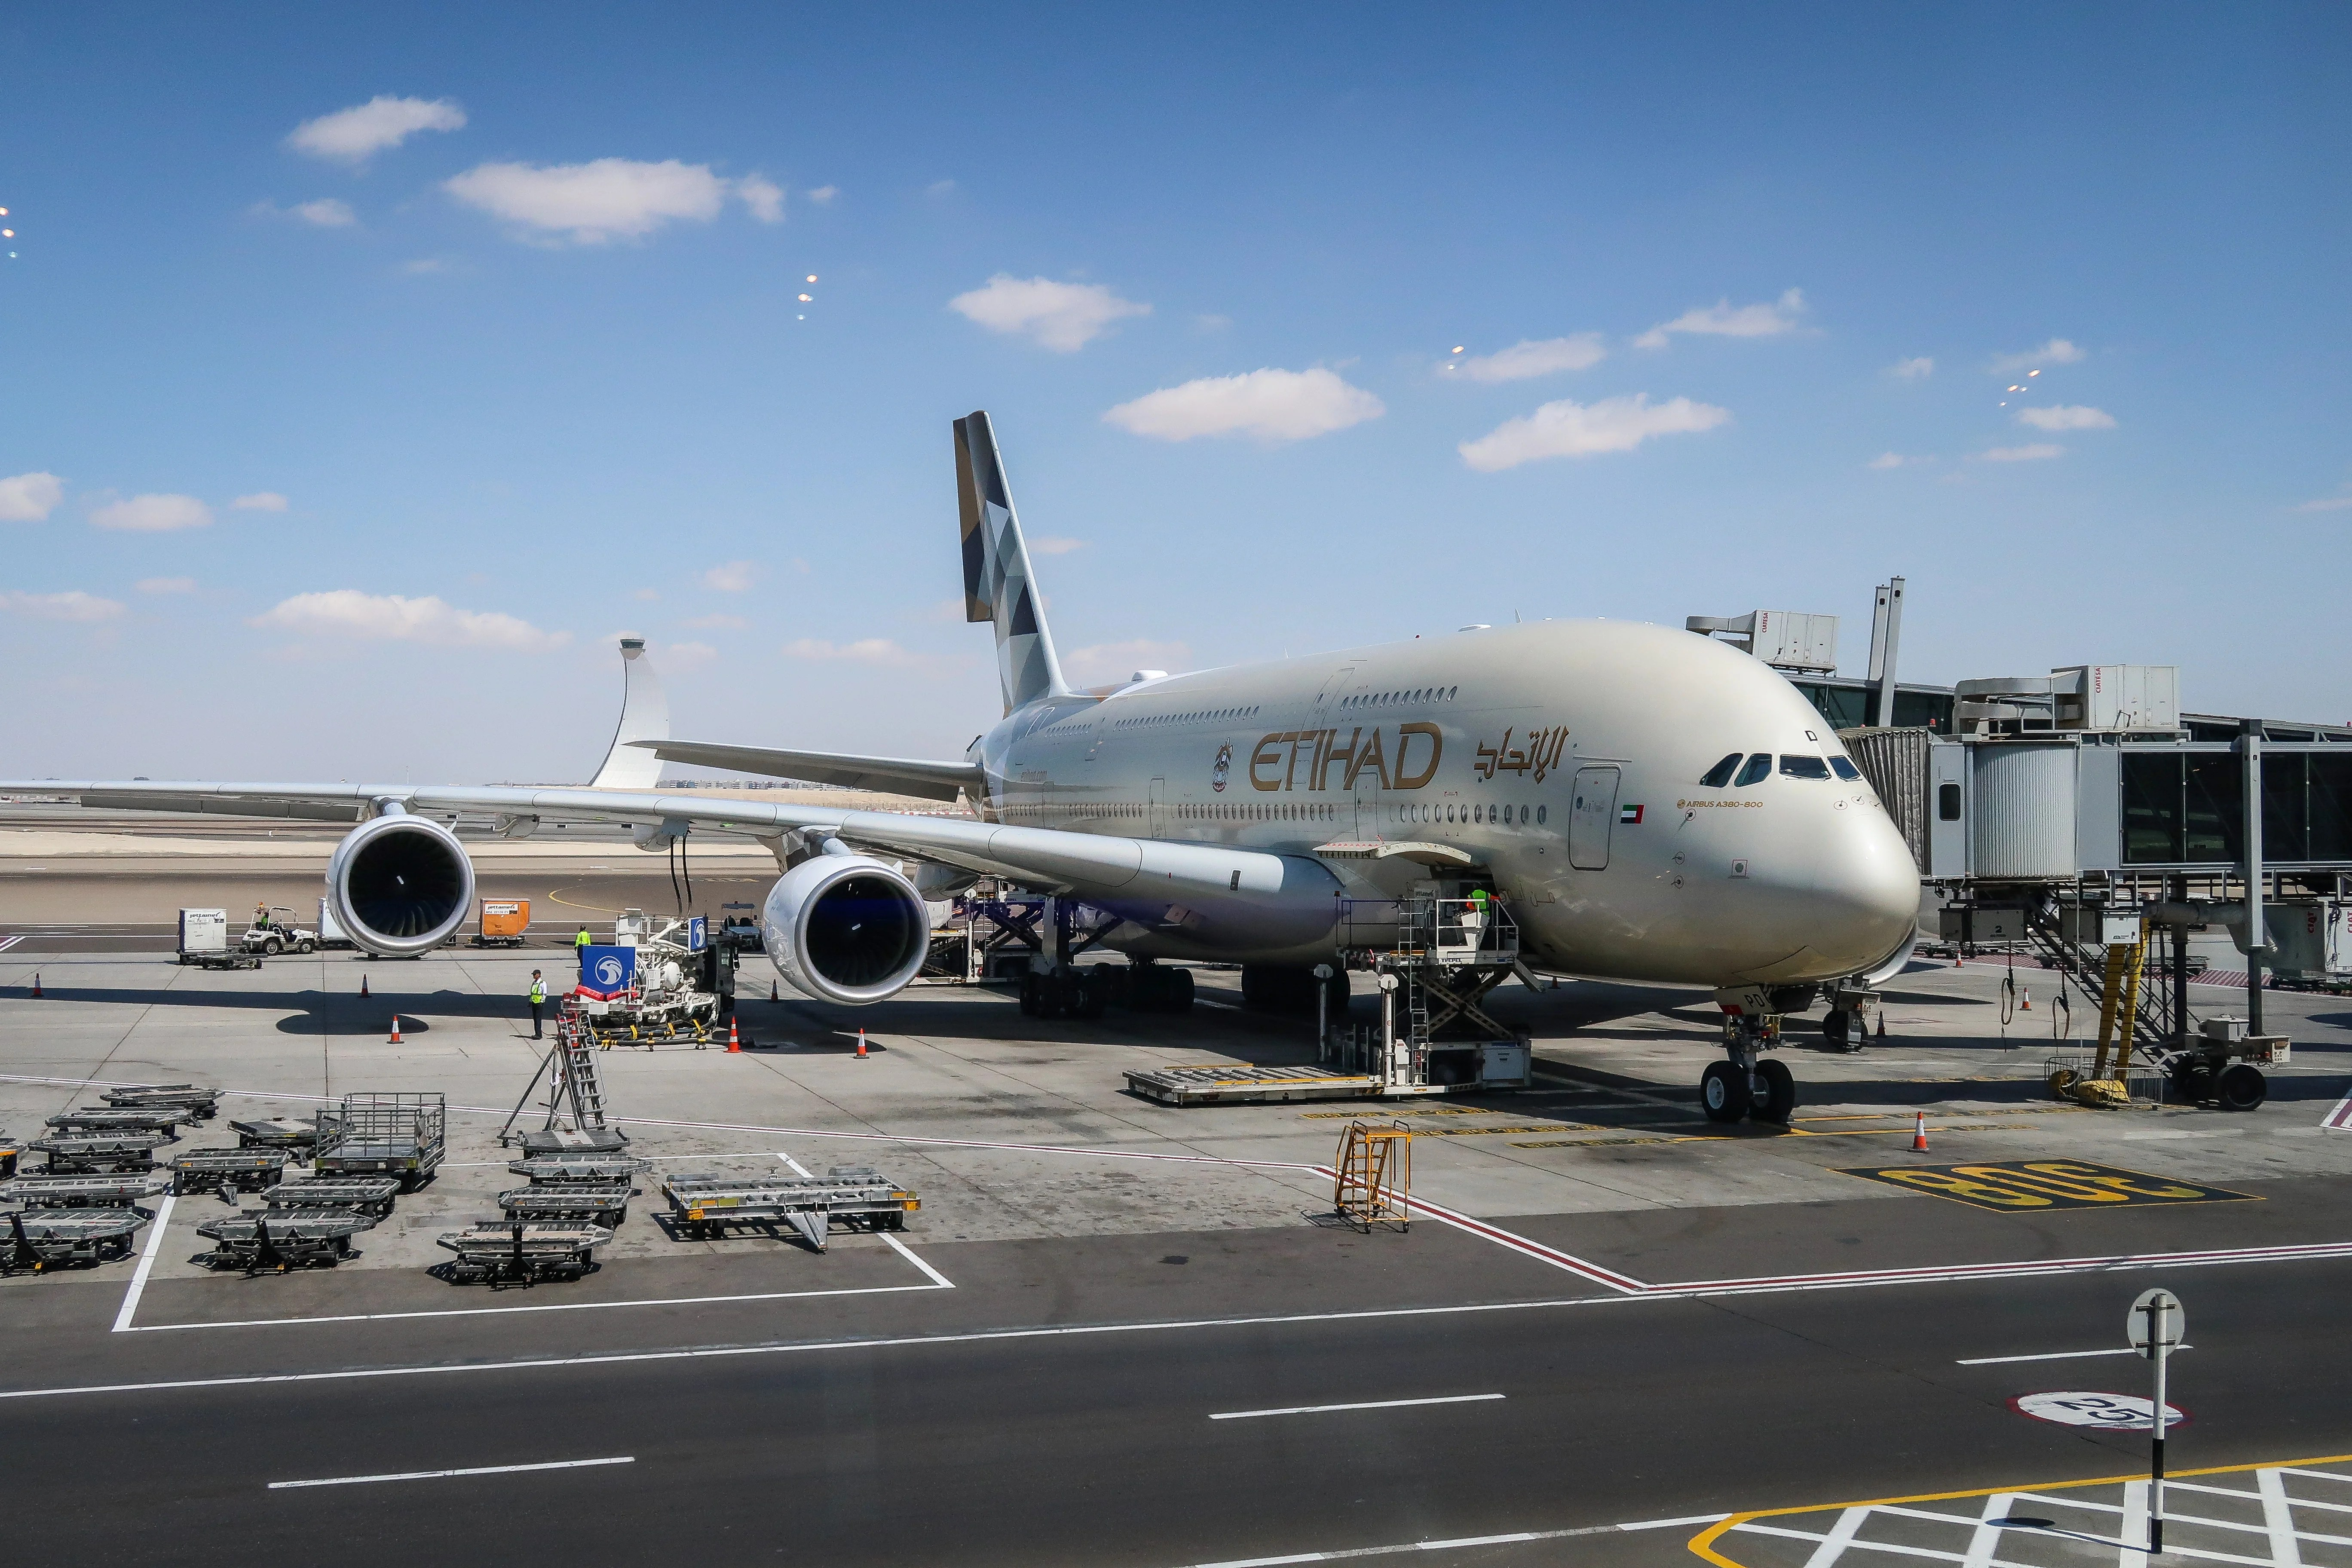 10 Fun Facts About the Airbus A380